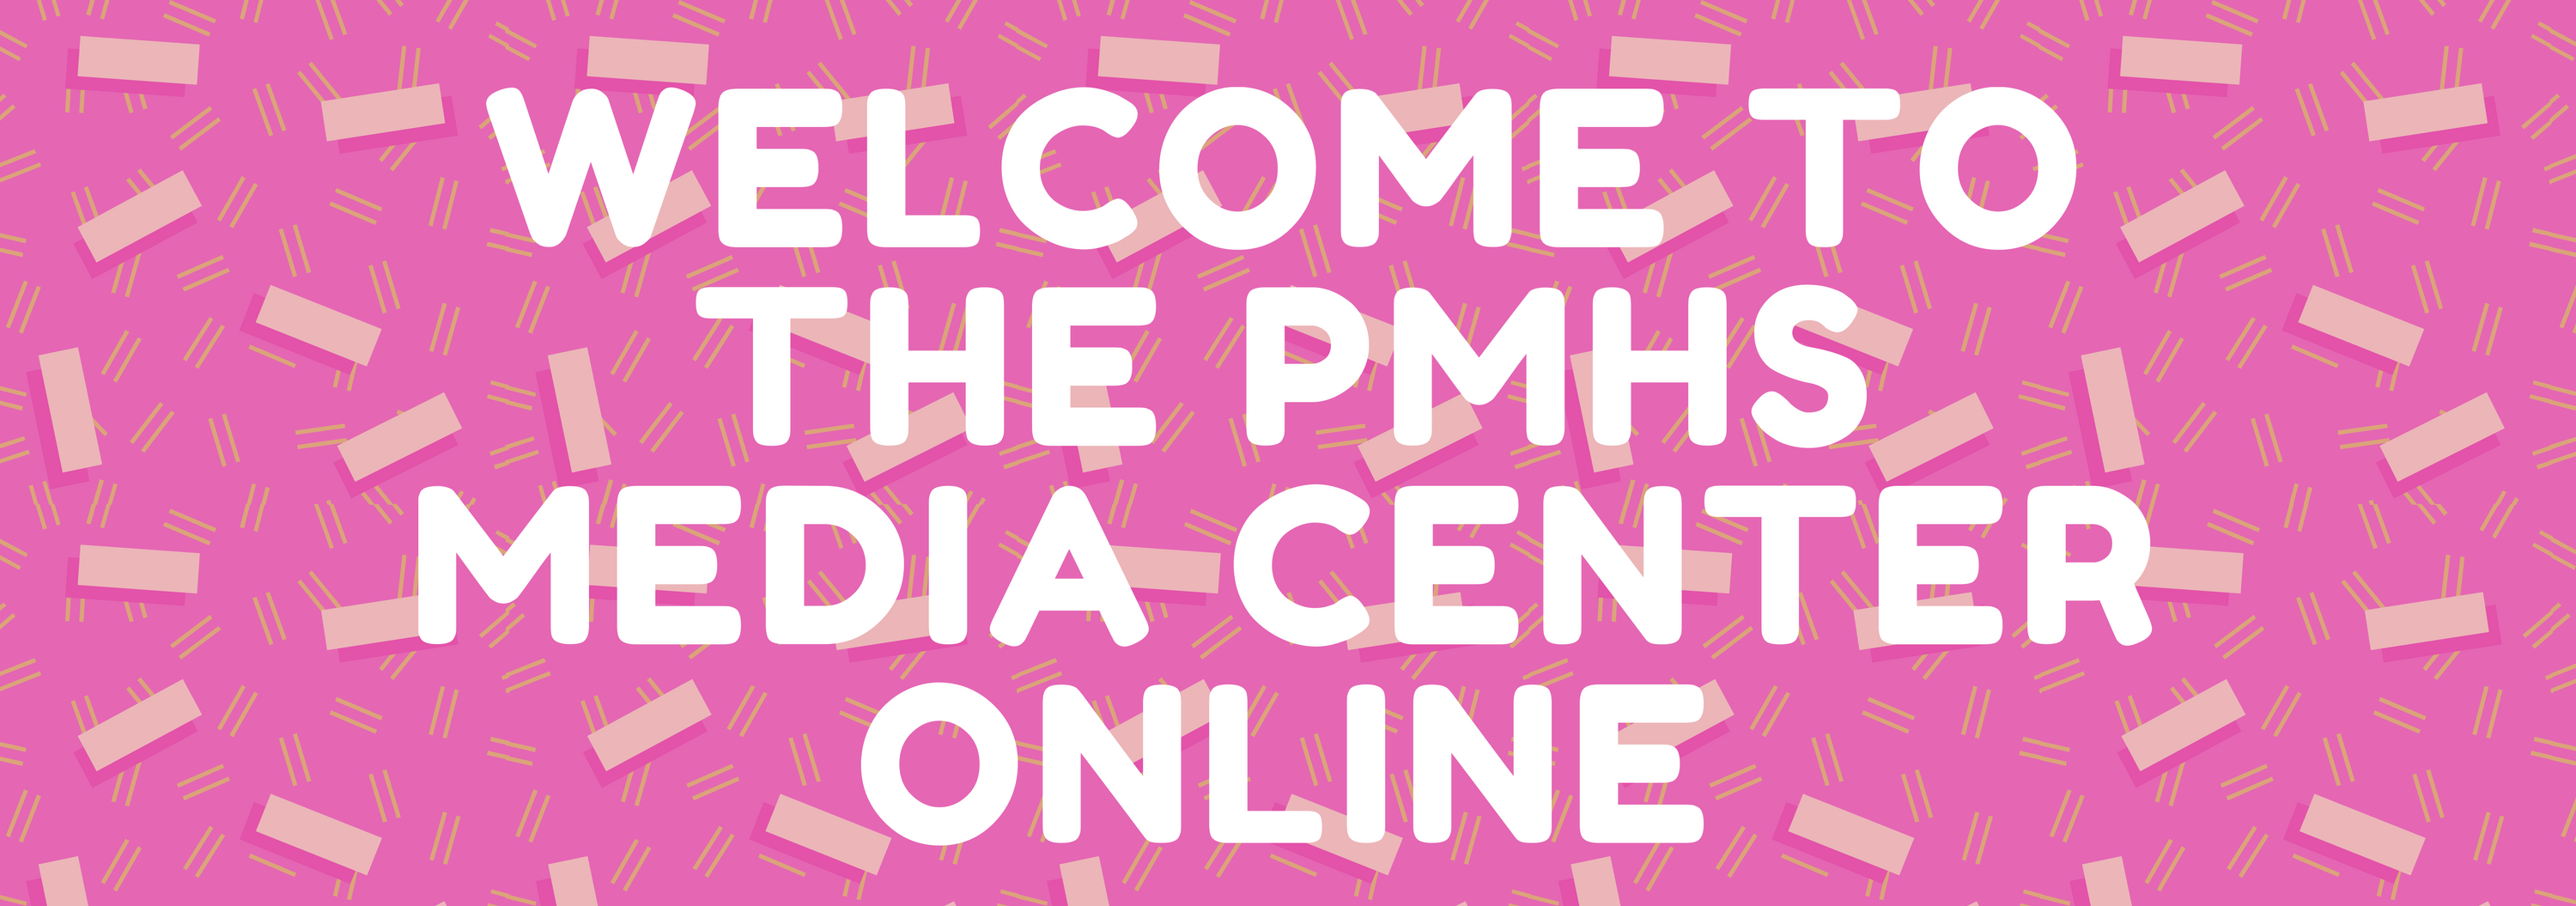 Welcome to the PMHS media center onlline